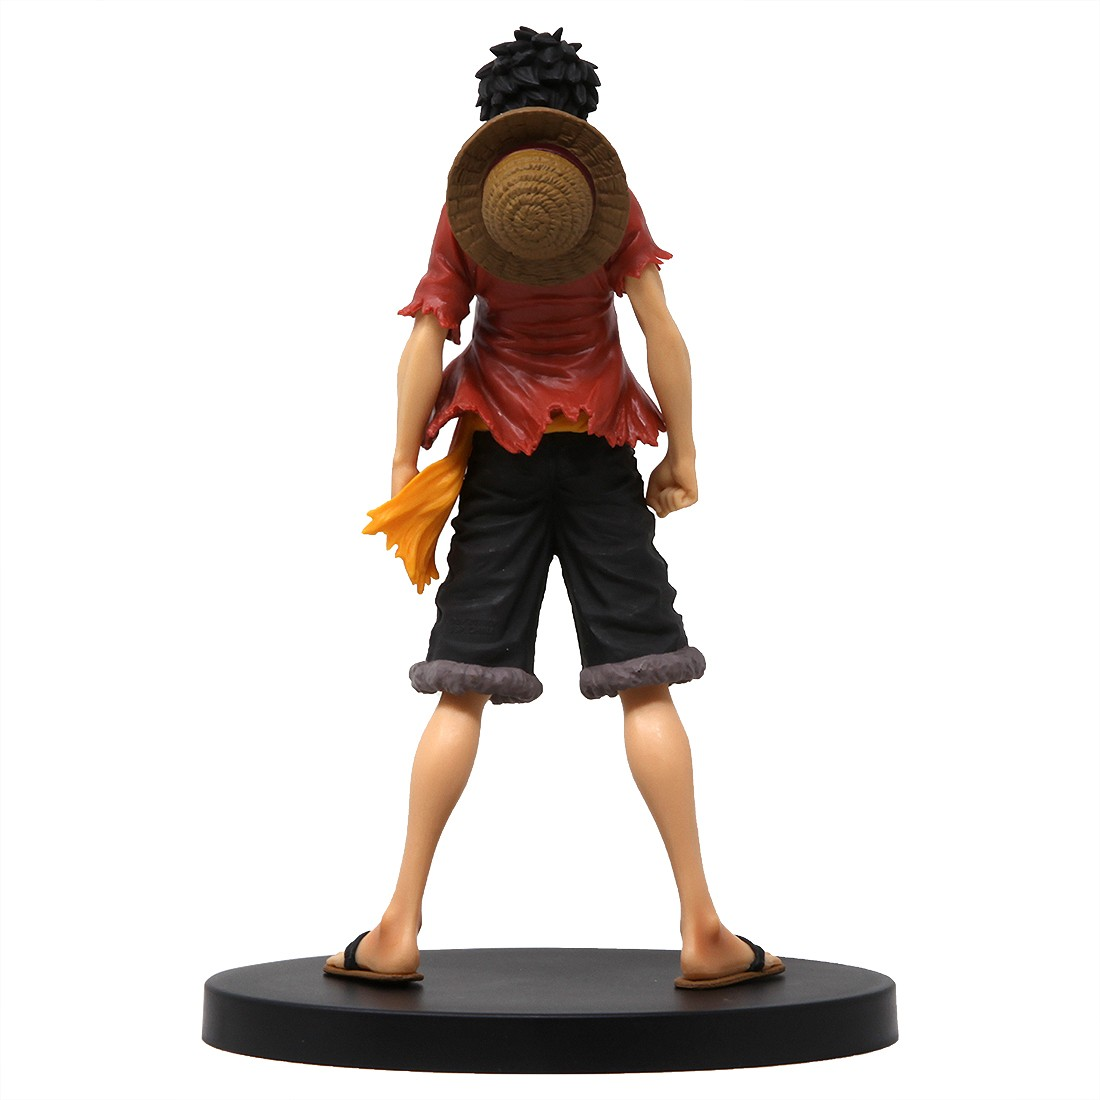 Banpresto Dxf One Piece Stampede The Grandline Men Vol 1 Monkey D Luffy Figure Red